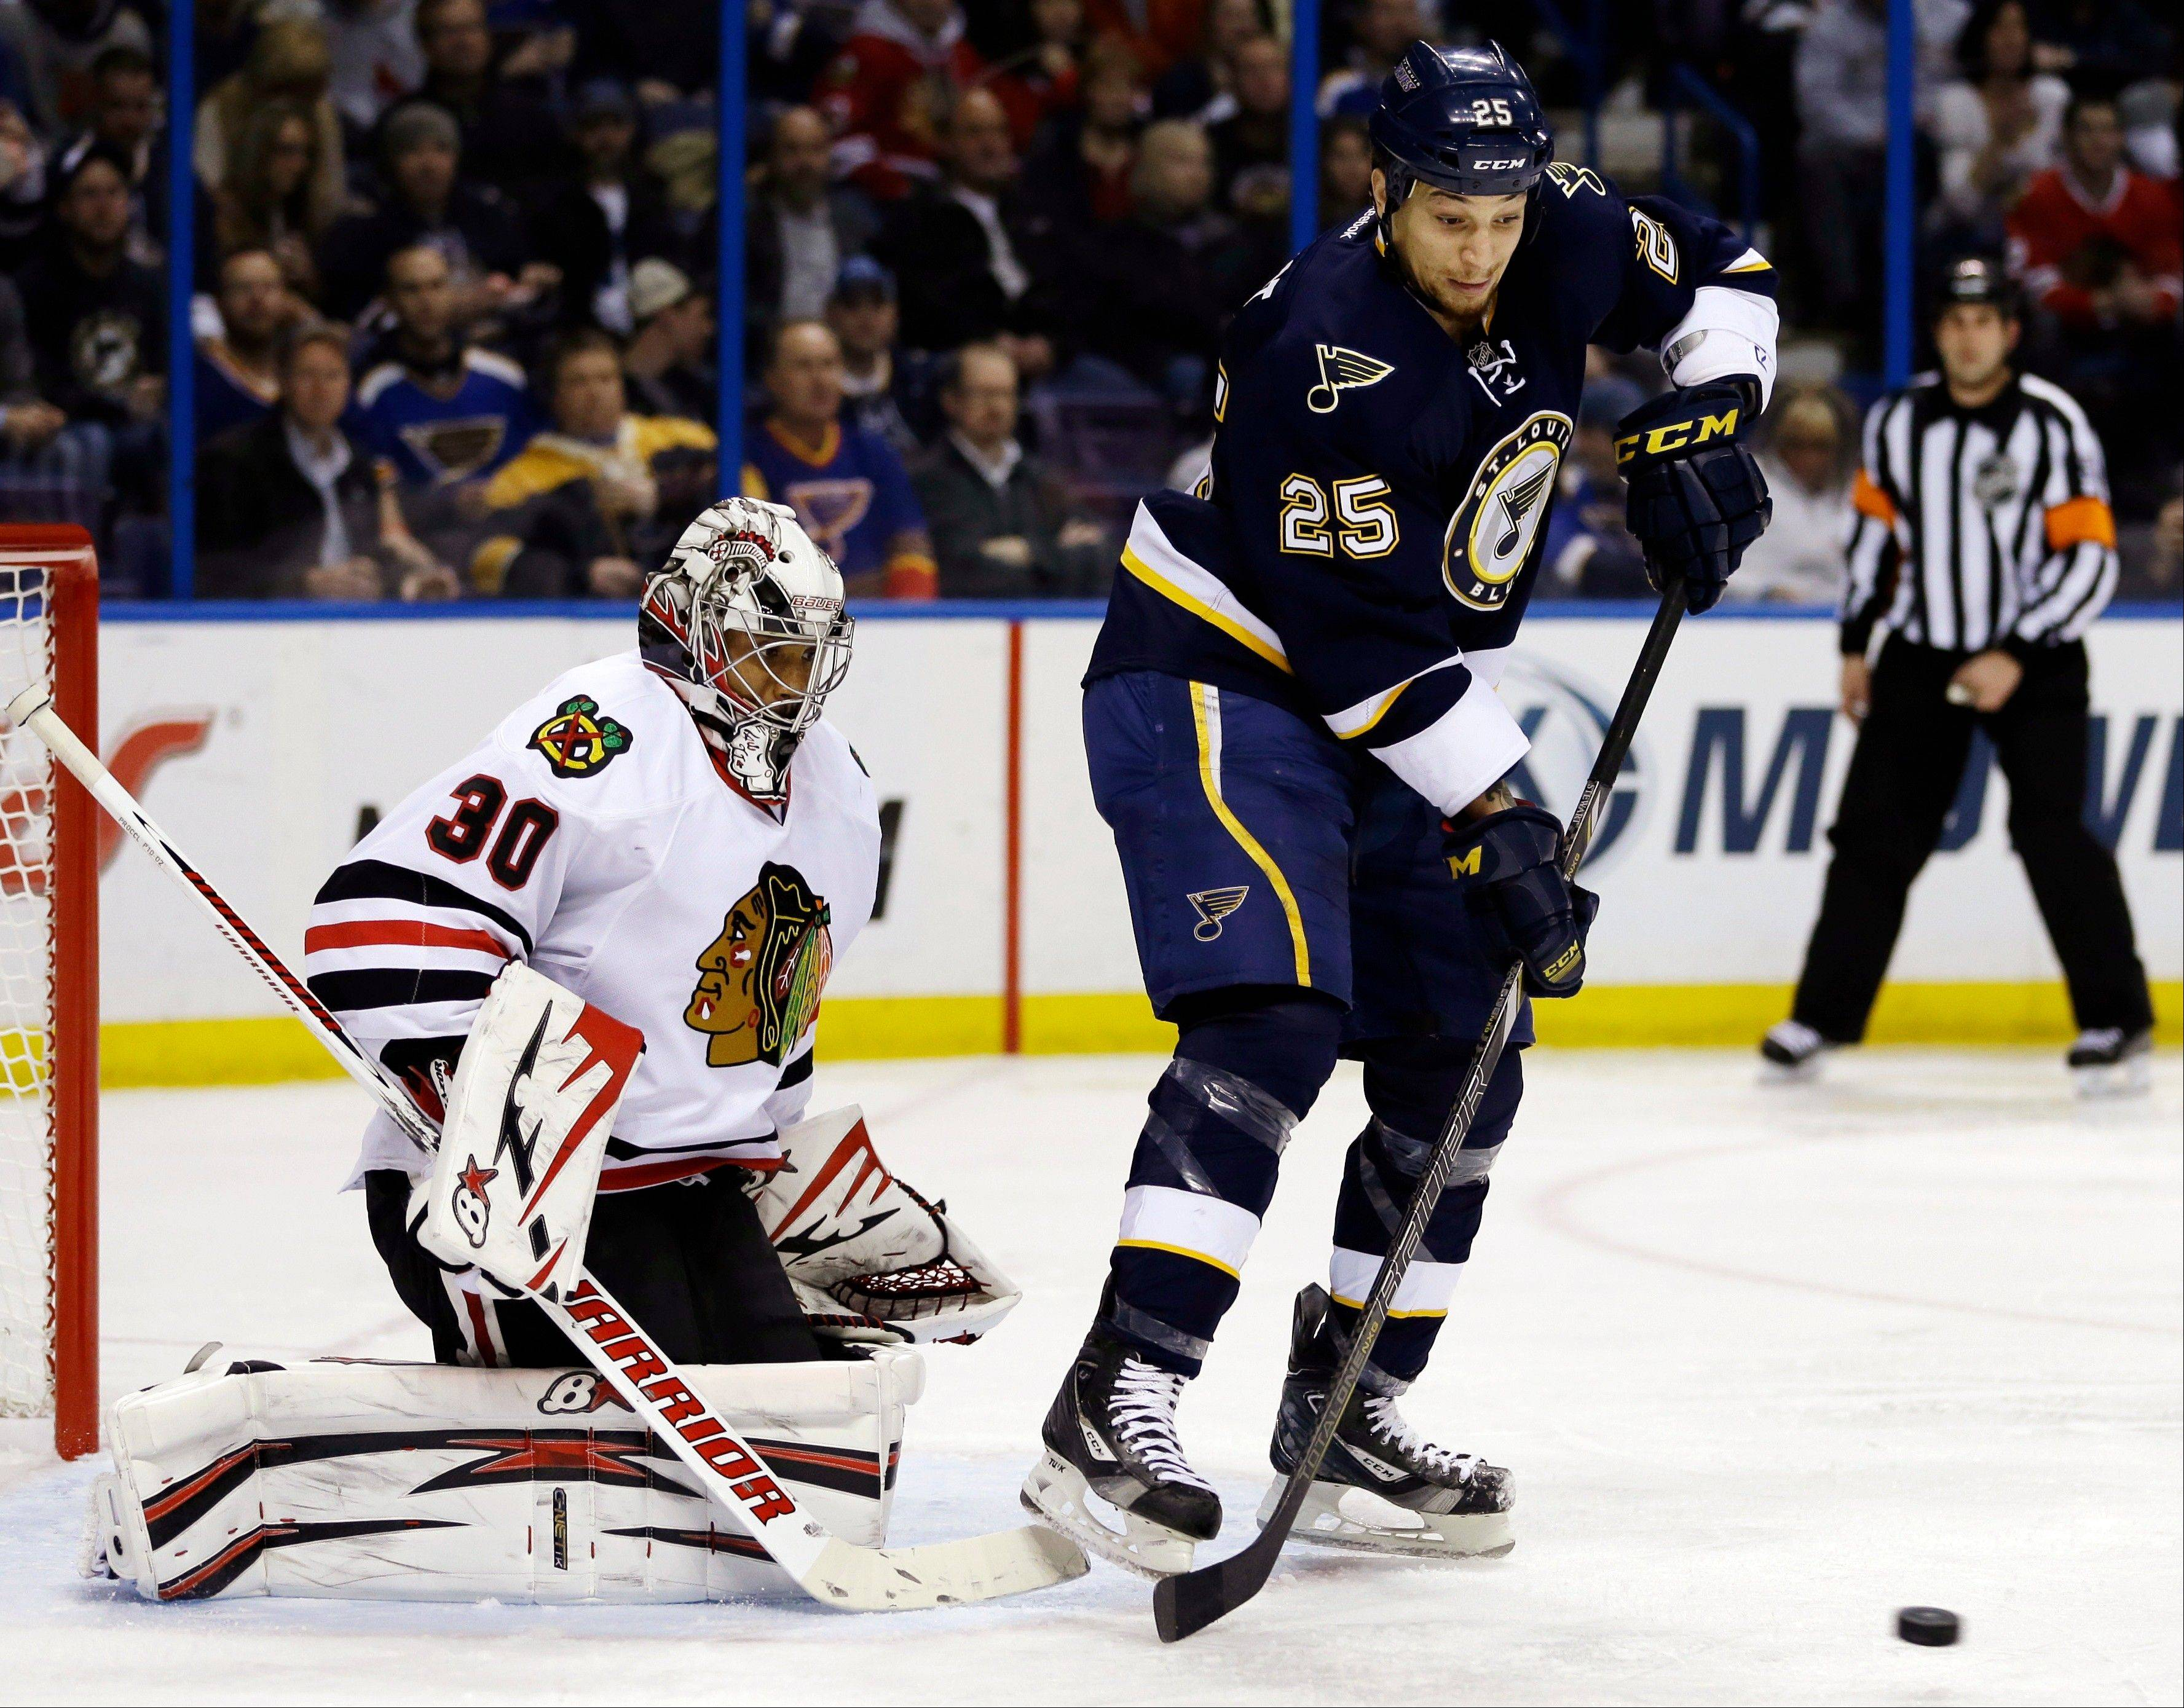 St. Louis Blues' Chris Stewart tries to deflect a puck as Chicago Blackhawks goalie Ray Emery defends during the second period .